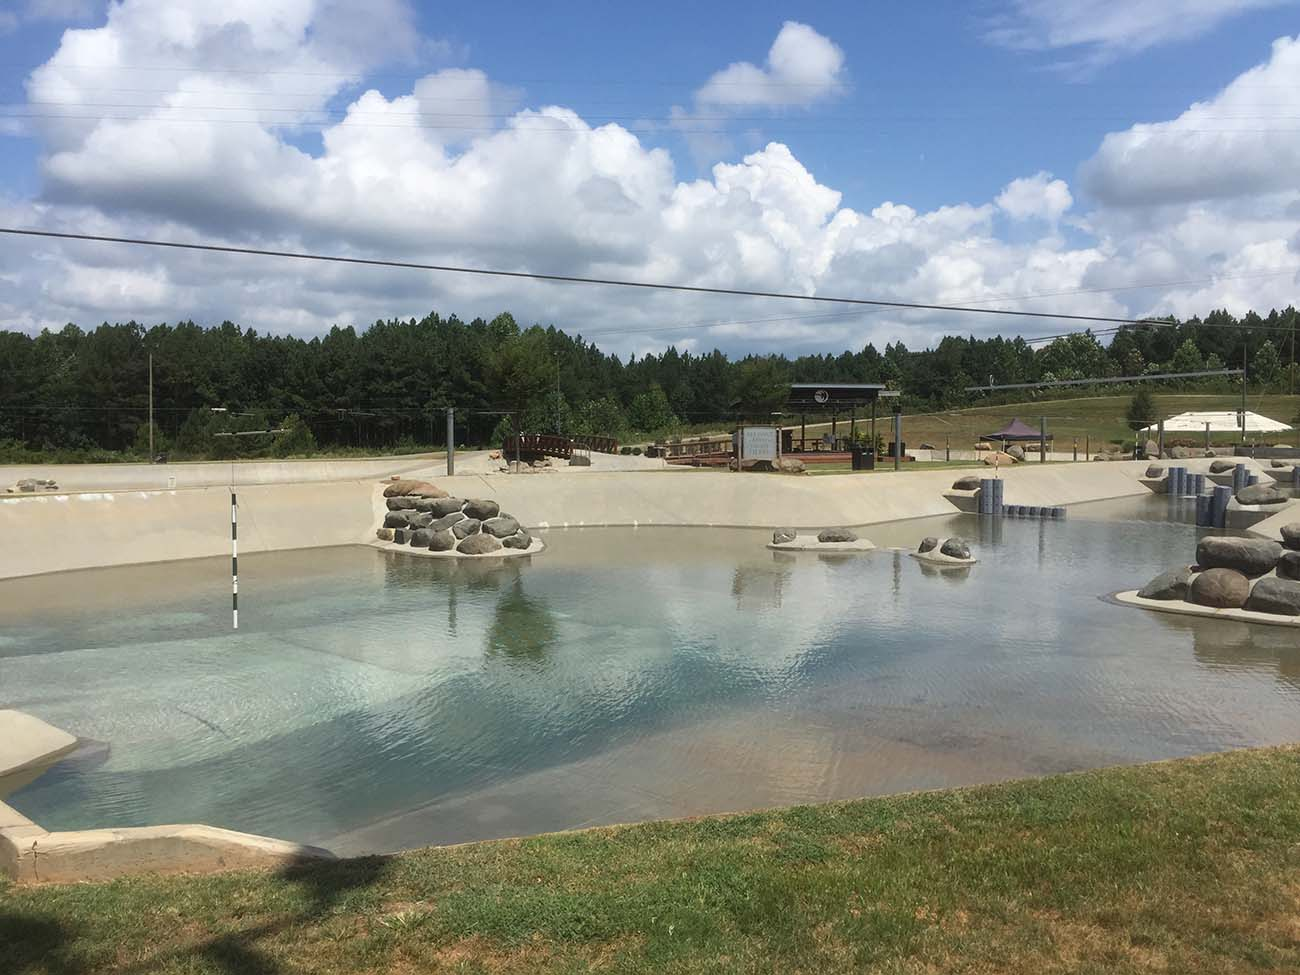 The Whitewater Center could be ready to open its main channel extremely soon